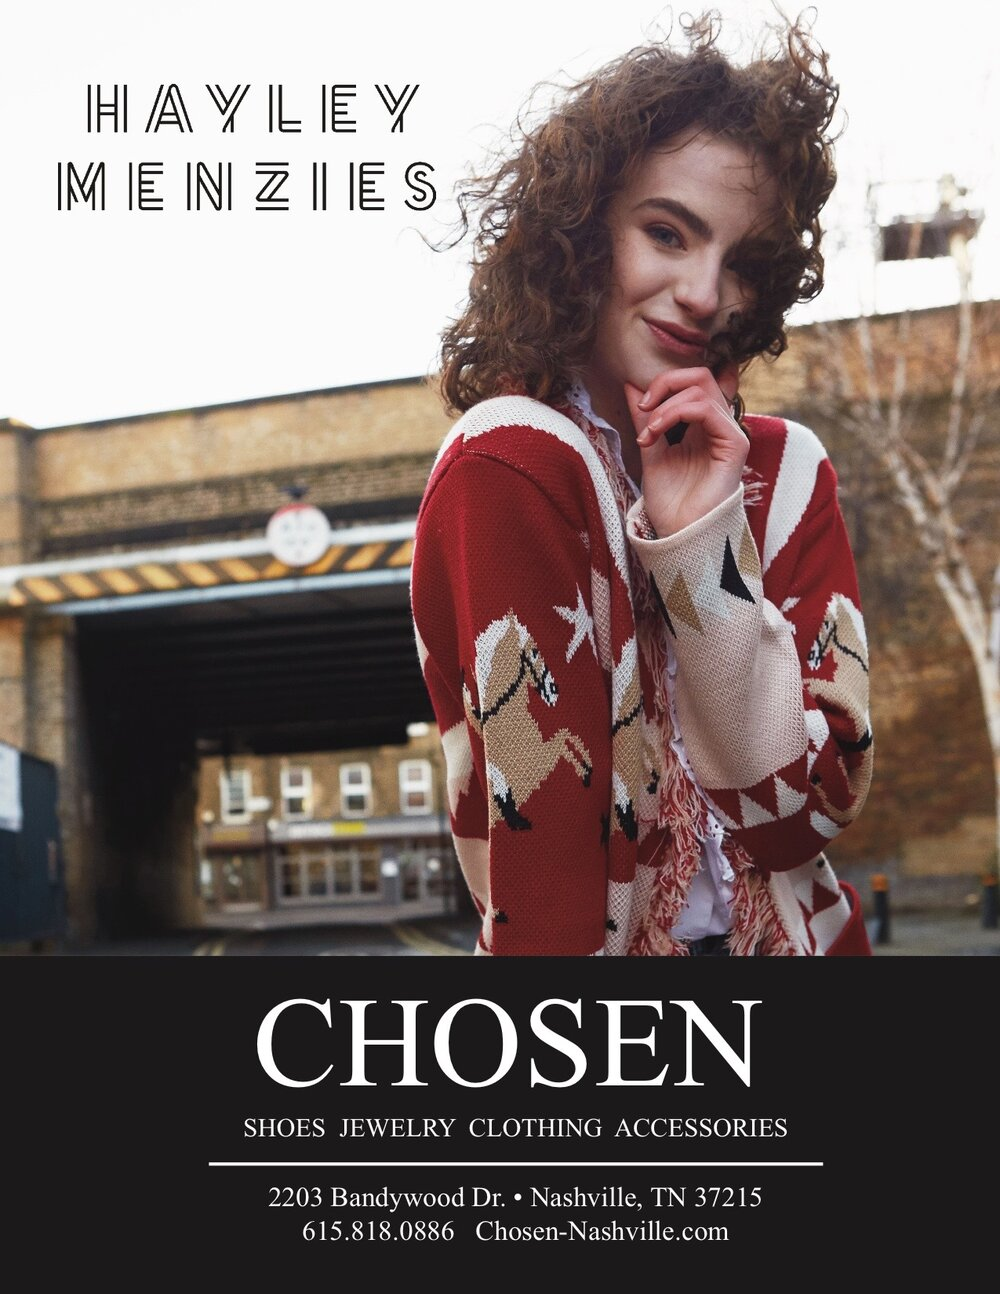 CHOSEN - A women's concept store specializing in unique clothing, accessories, fine jewelry, shoes and bags. Featuring designers from all across the globe.www.chosen-nashville.com